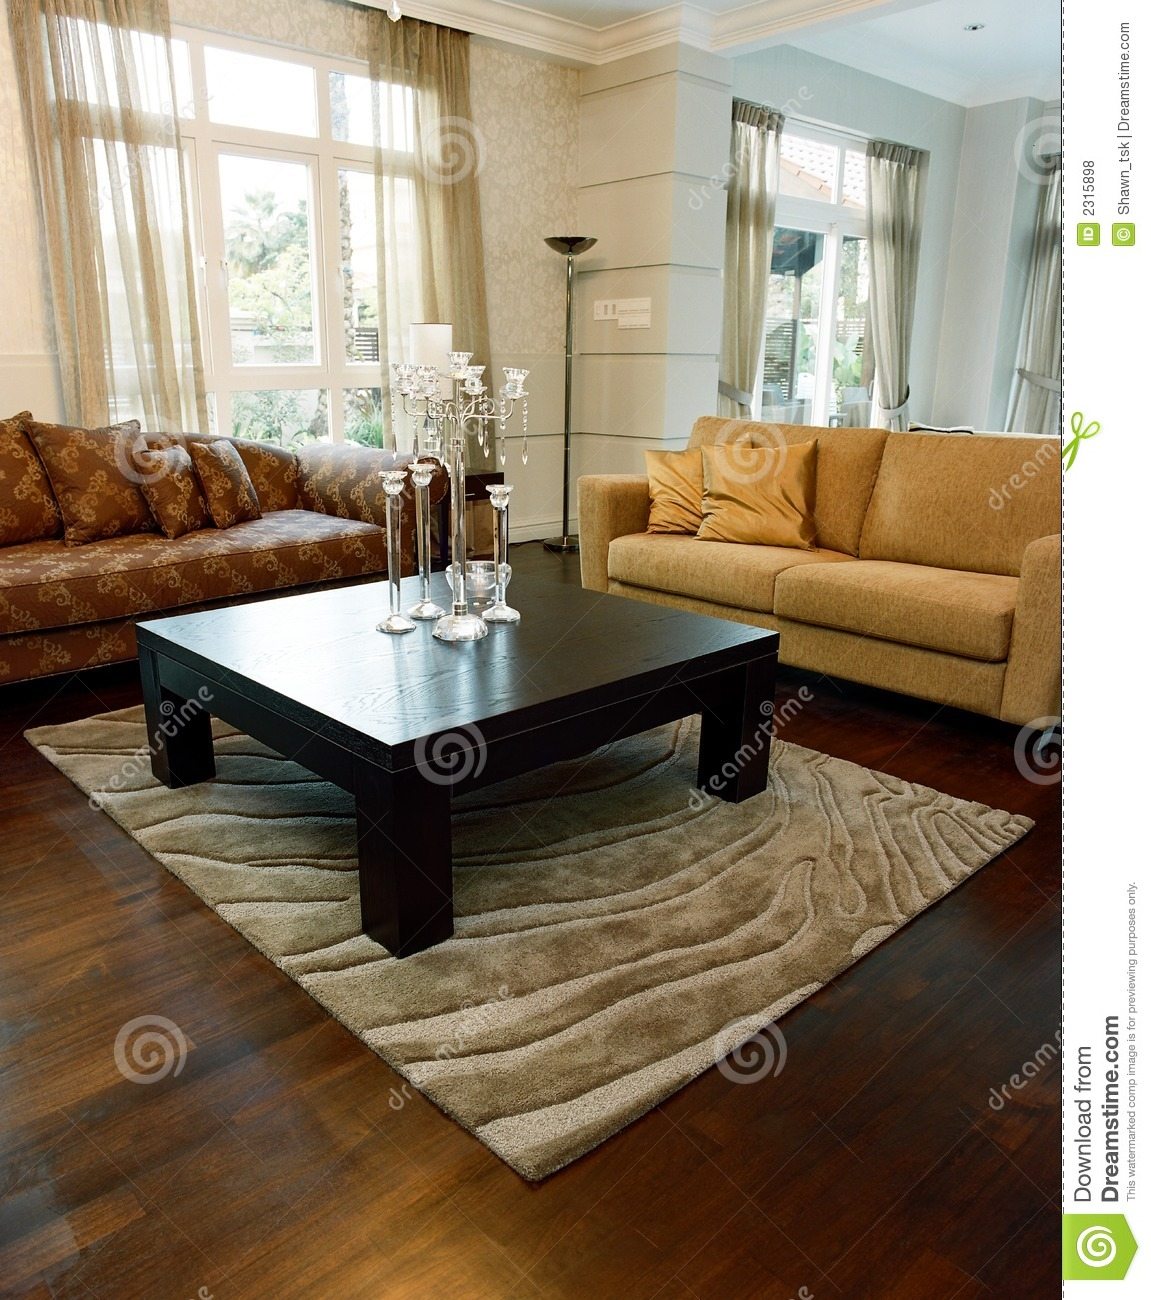 Interior design living area royalty free stock photos for Living area interior